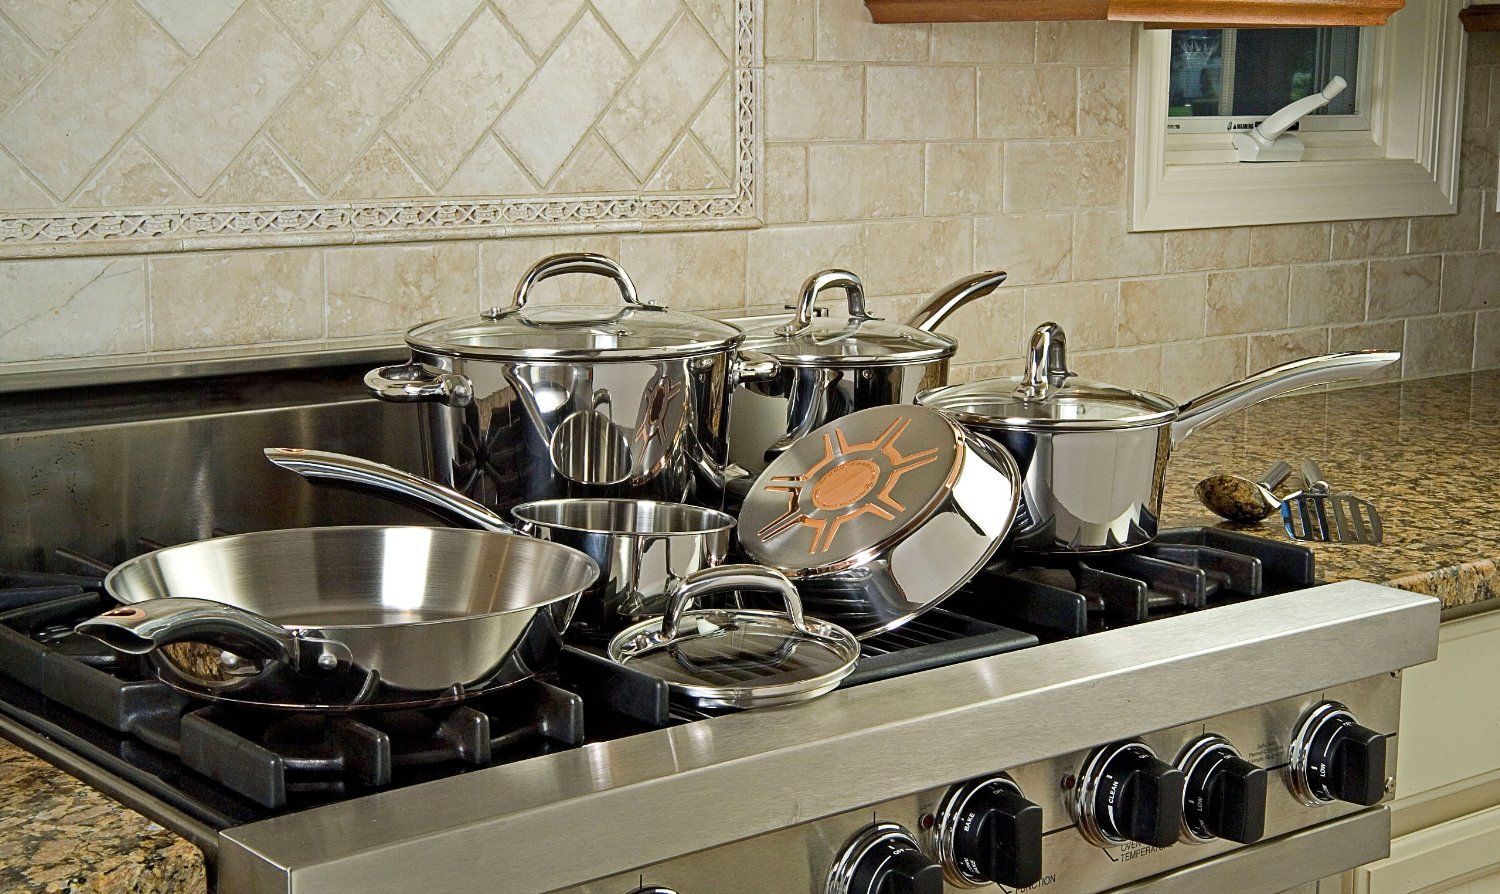 T Fal Ultimate Stainless Steel Review Worth A Buy